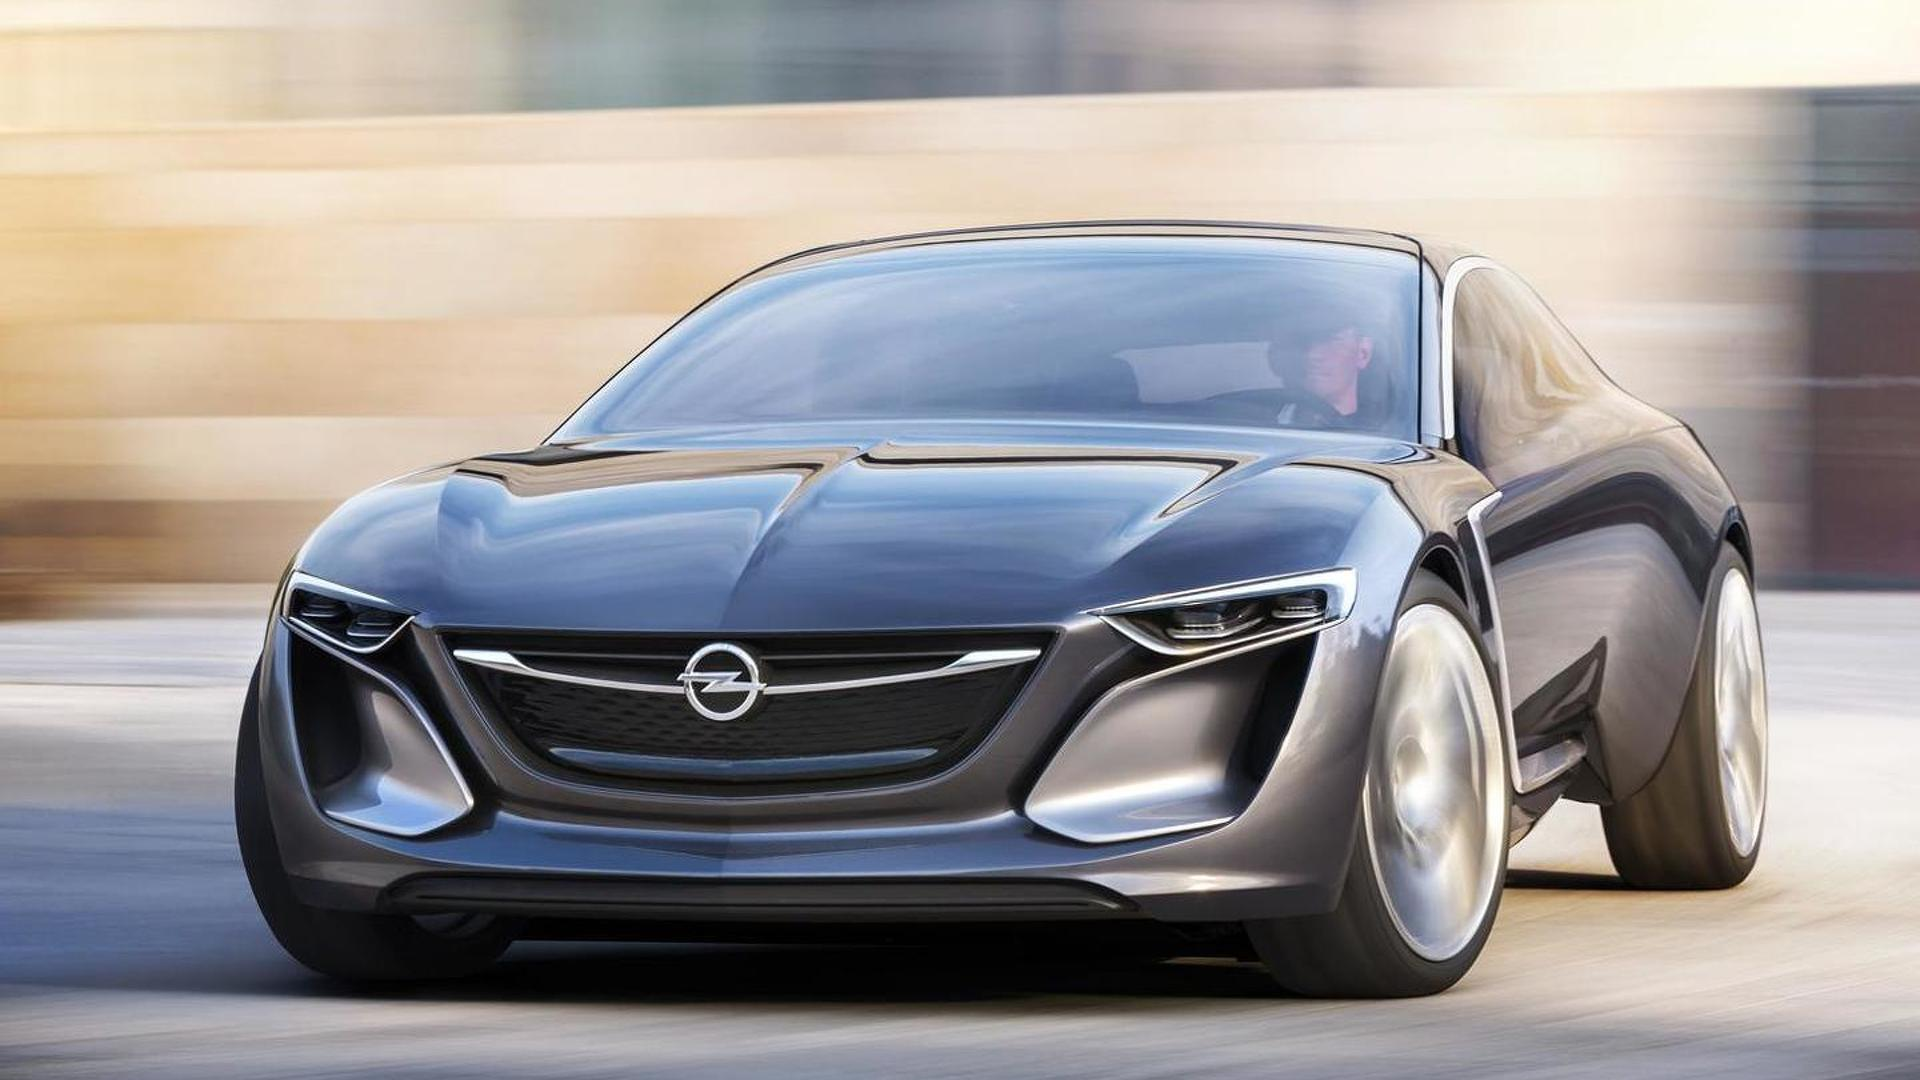 opel monza based large suv flagship model due in 2017 report. Black Bedroom Furniture Sets. Home Design Ideas